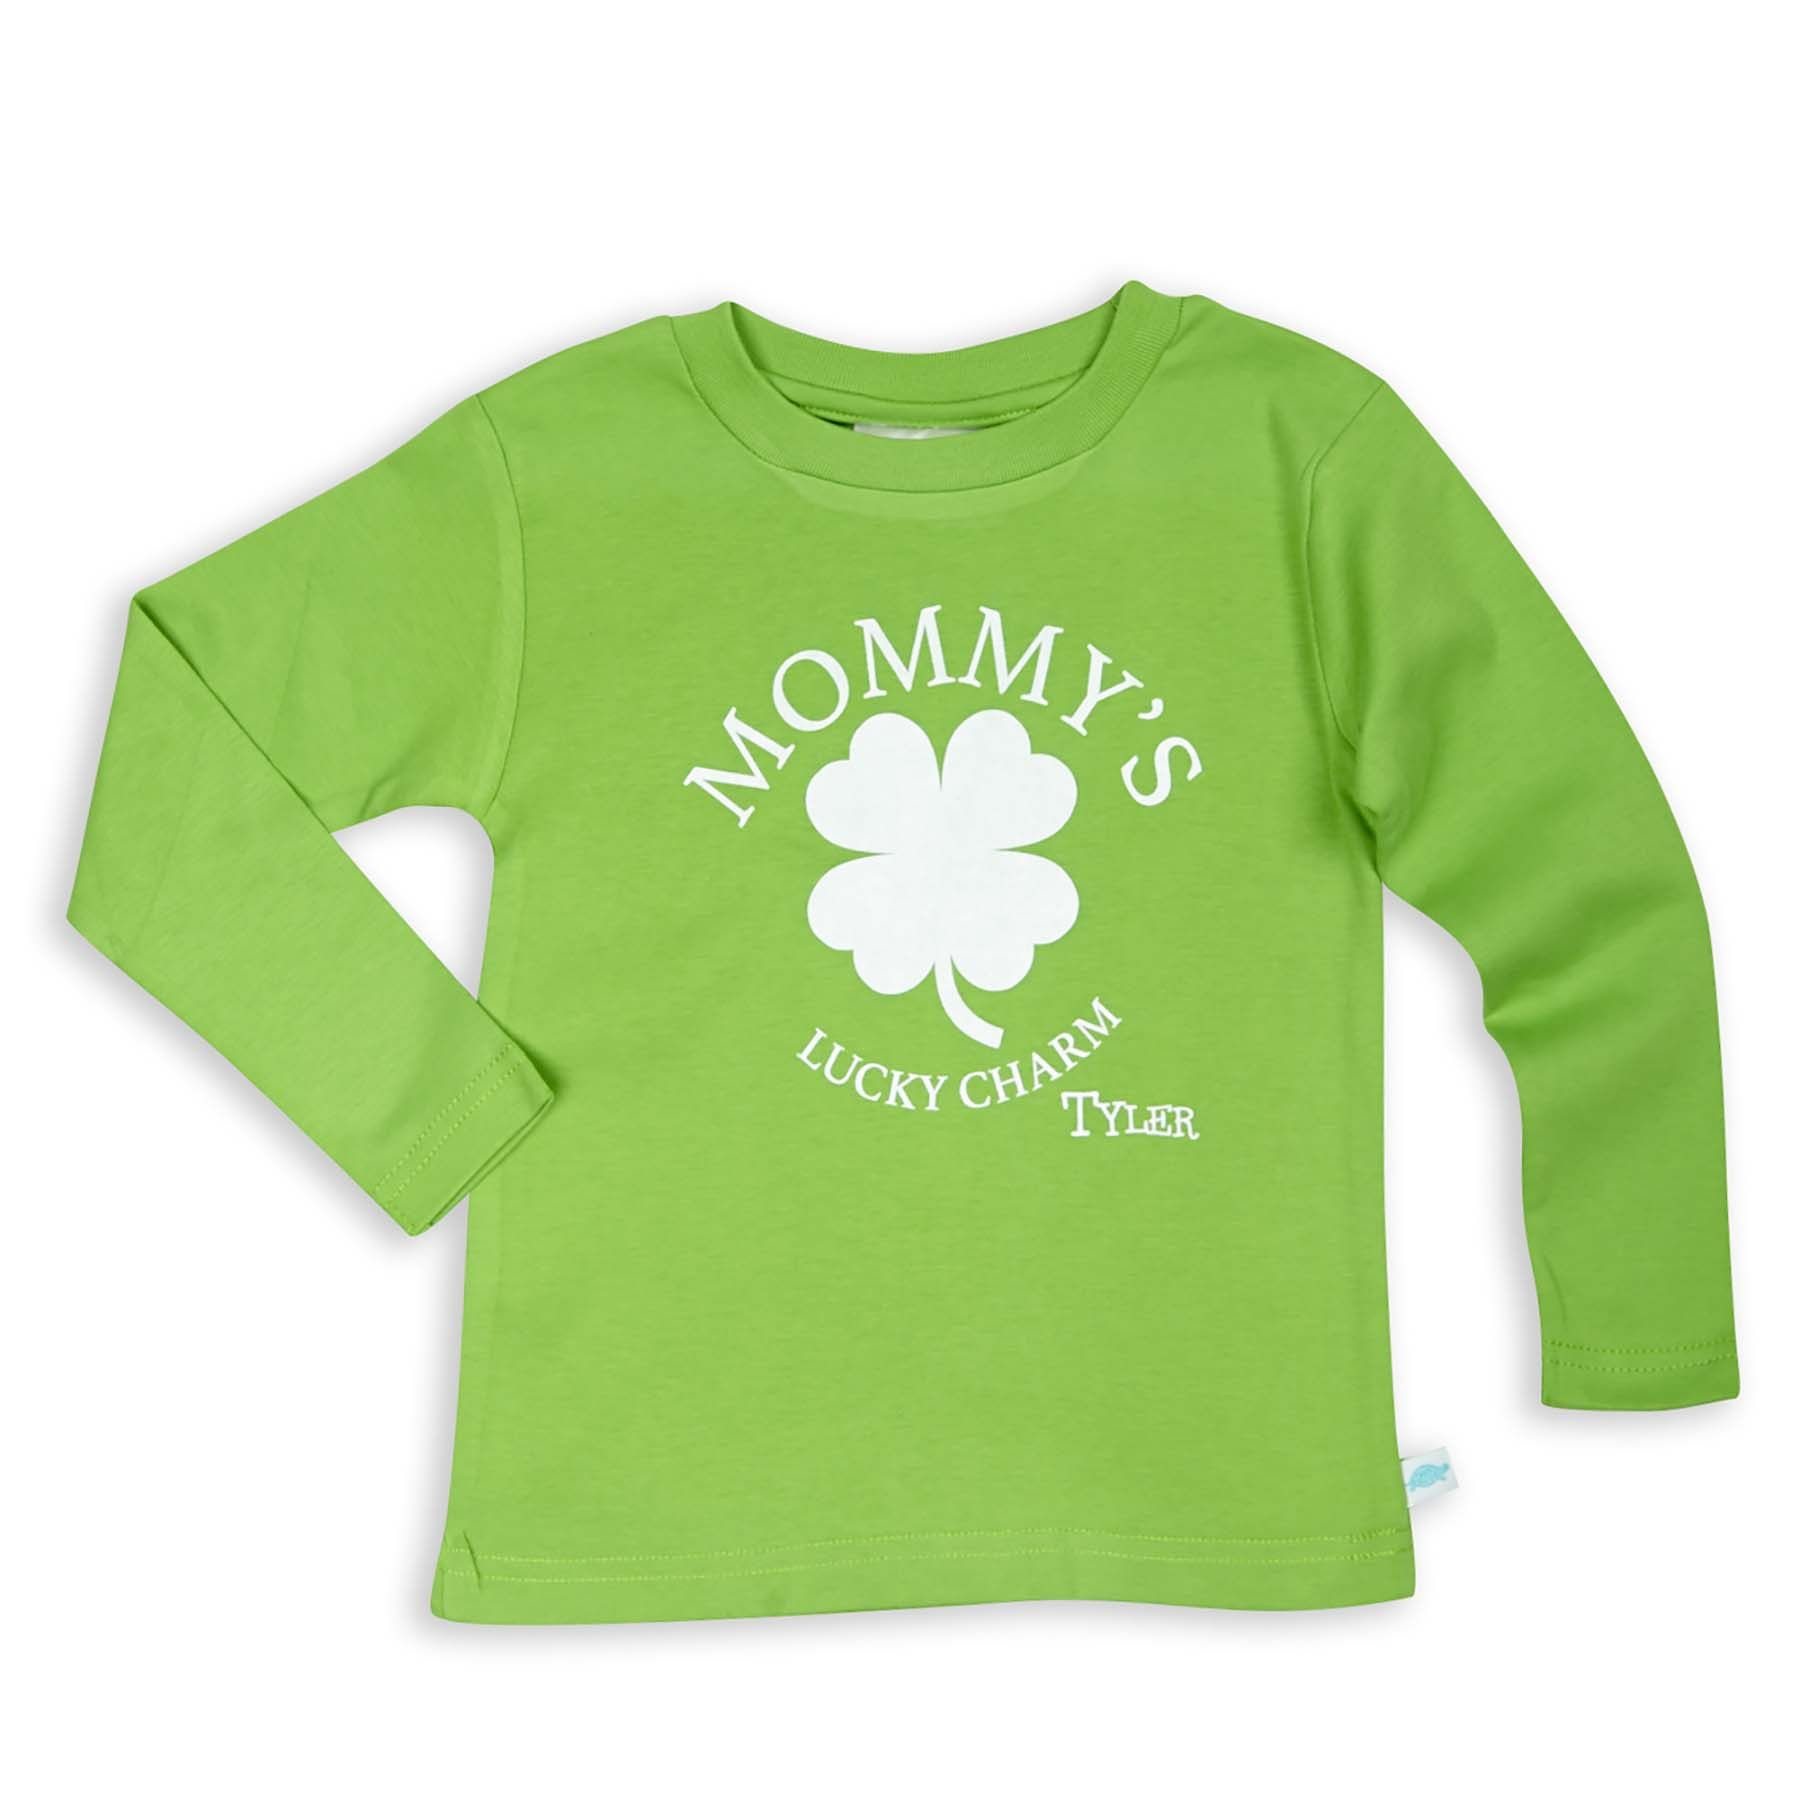 Boys Green Cotton Shamrock Shirt